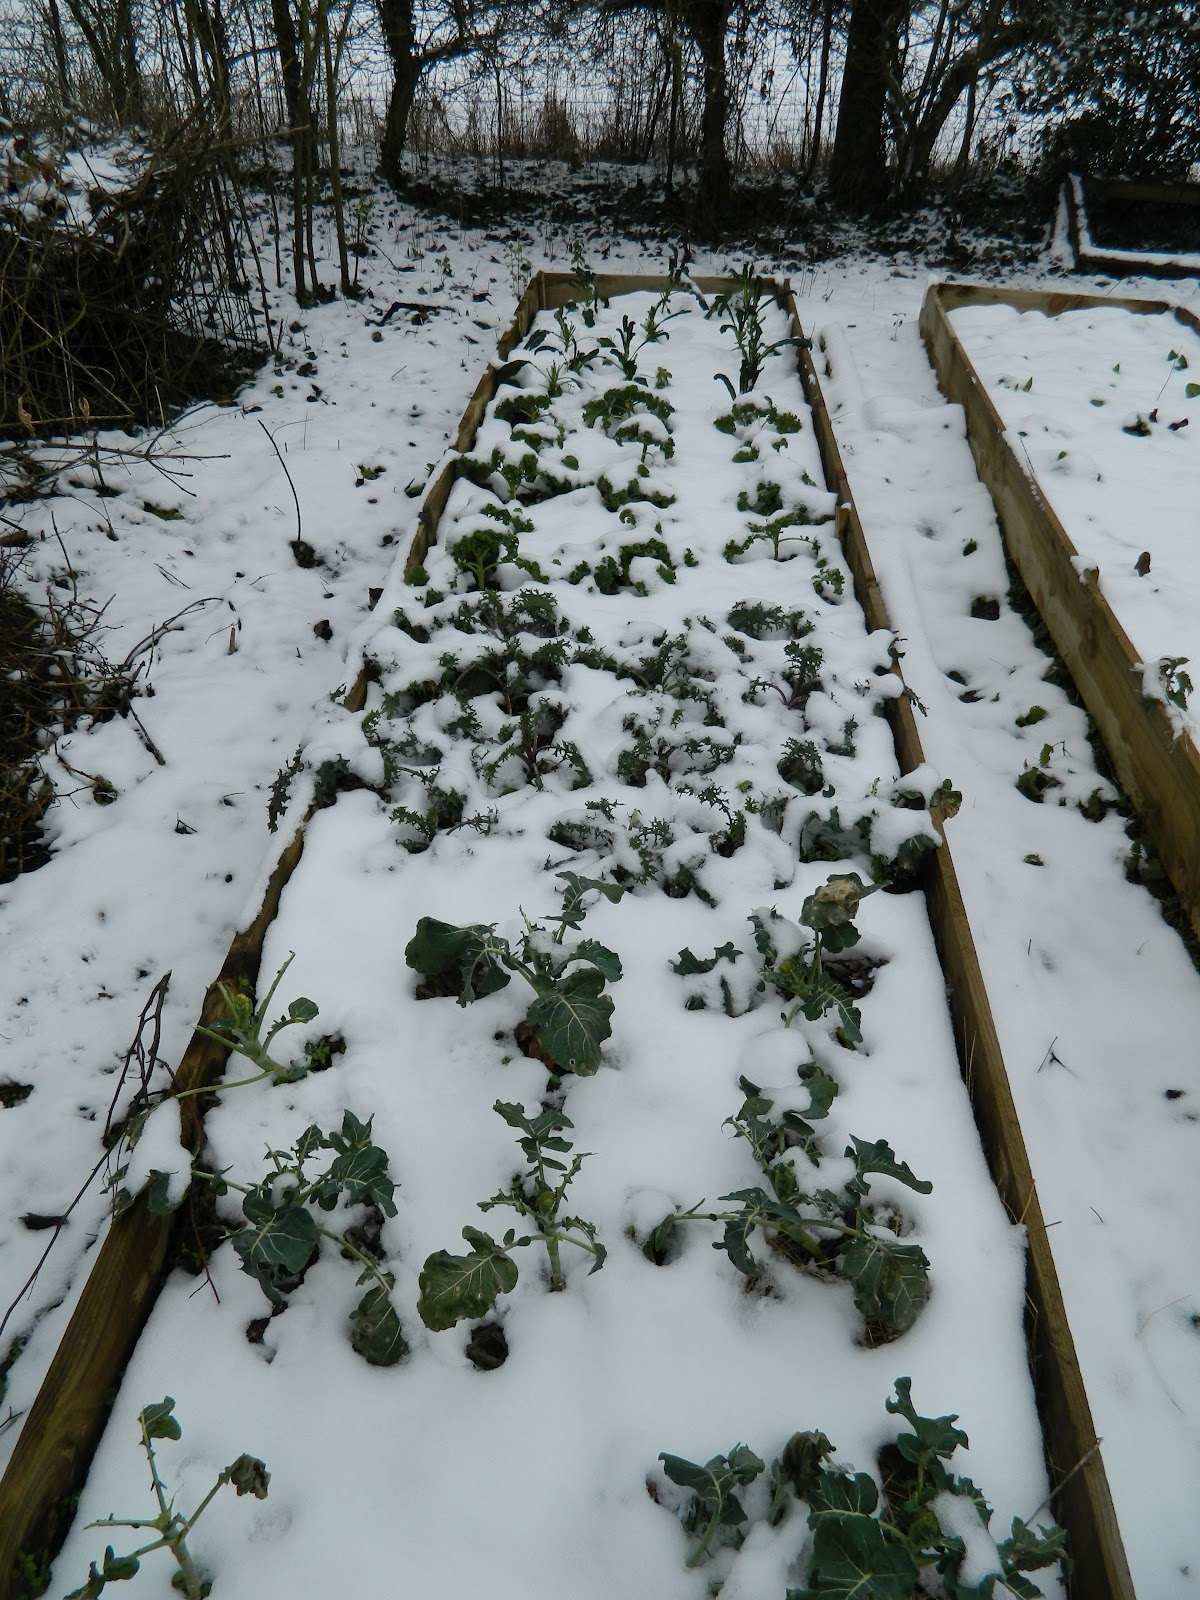 anita u0027s vegetable garden in the snow u003dfrozen vegetables dreaming